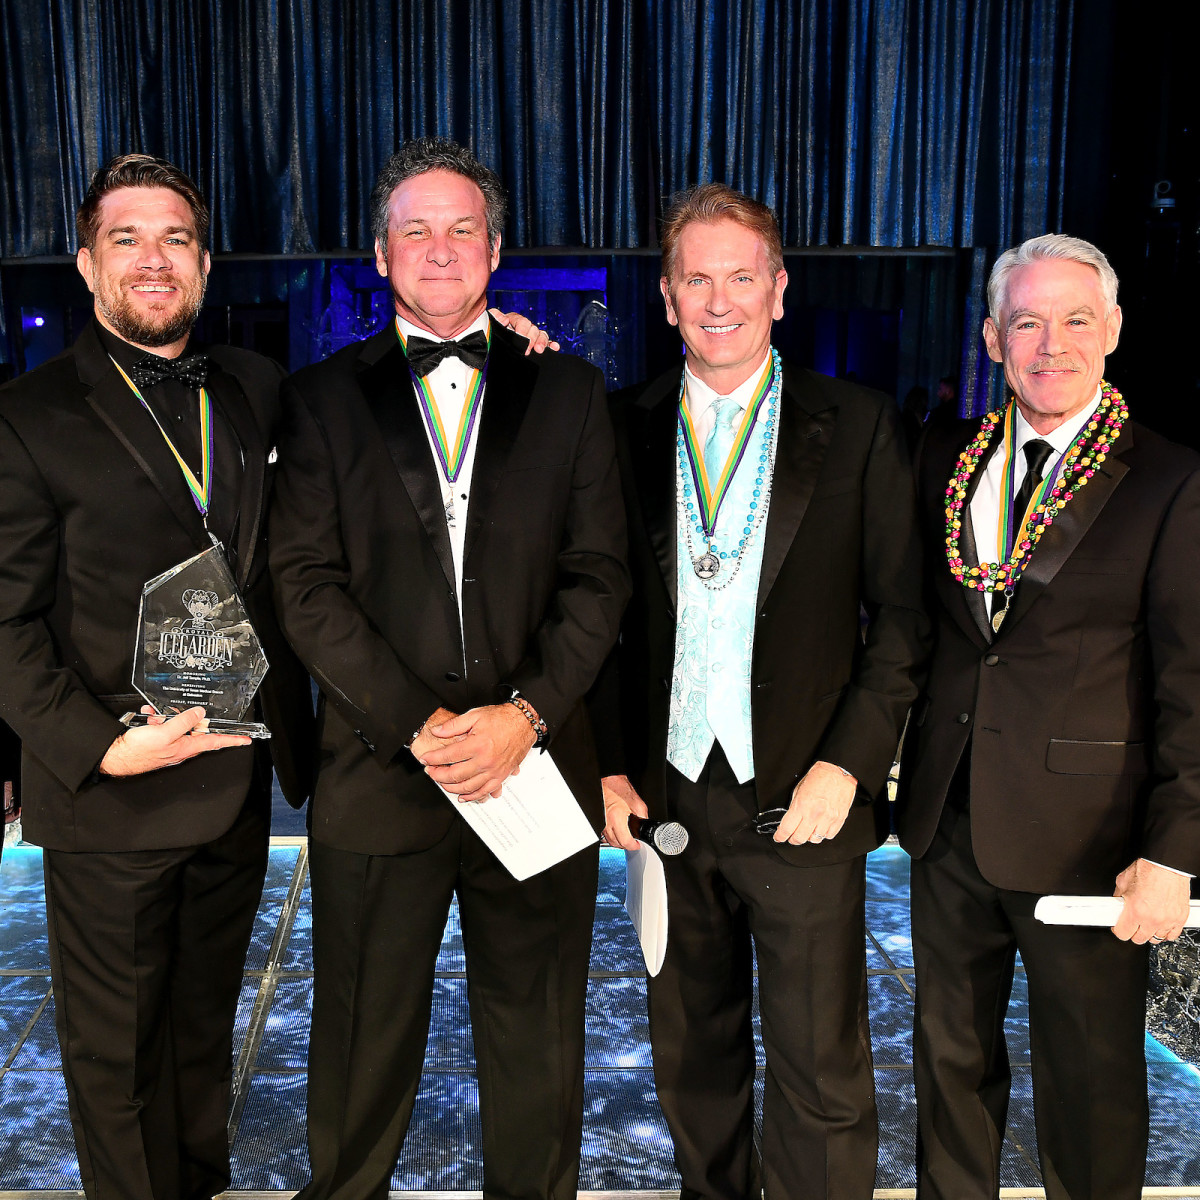 San Luis Salute 2020 UTMB's Dr. Ben Raimer and event honoree Dr. Jeff Temple, Bob Slovak, Frank Billingsley and Tom Koch